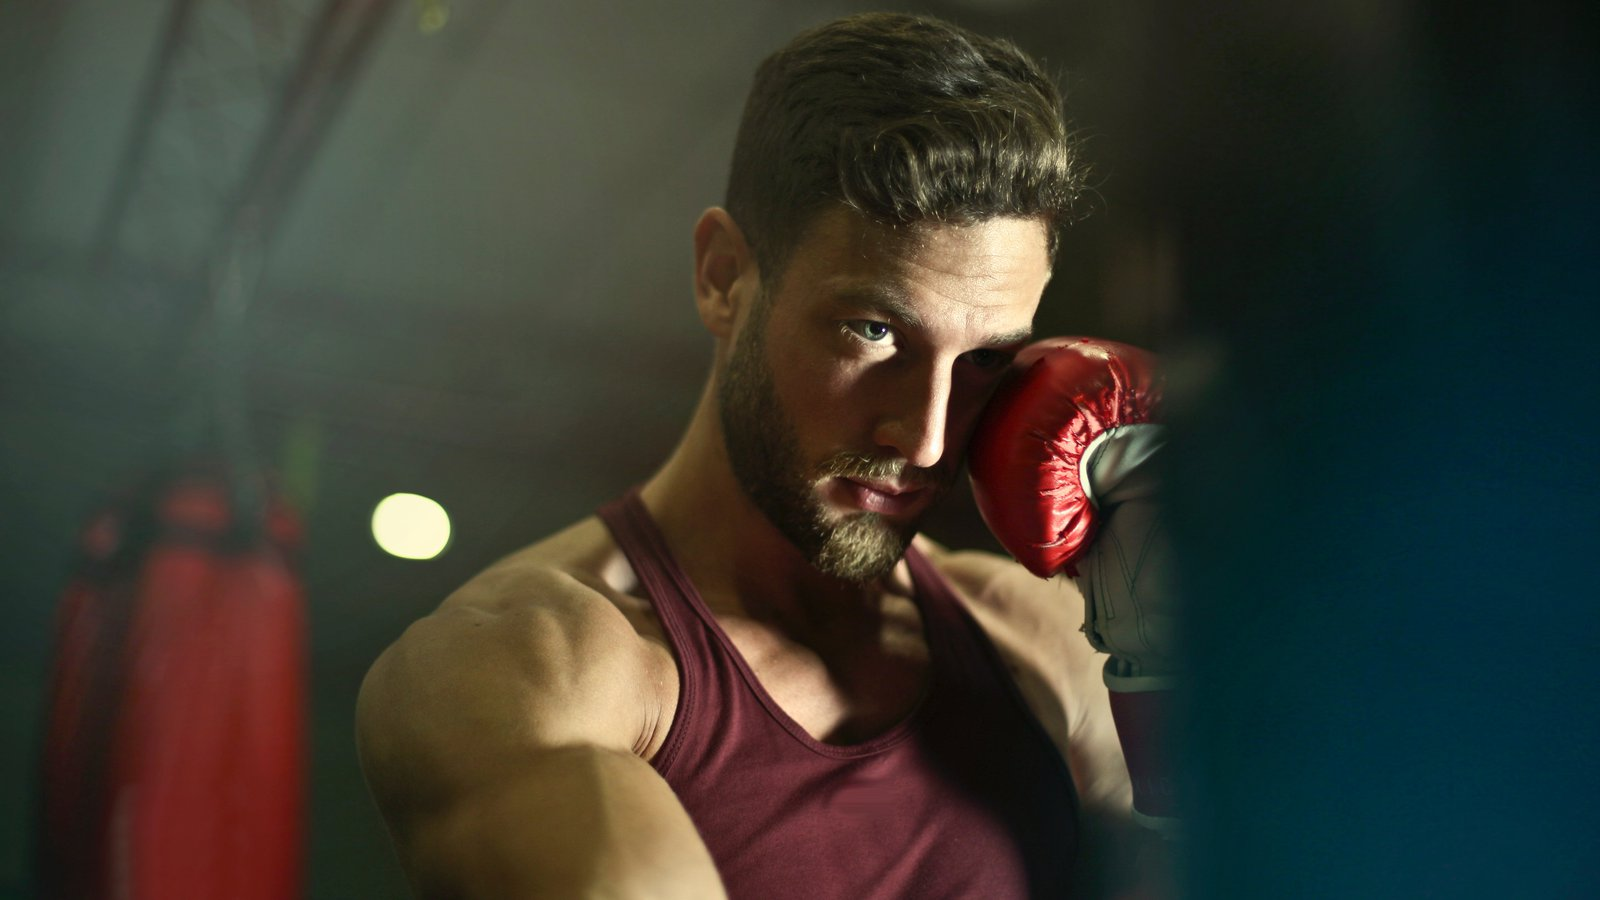 Most Common Boxing-Related Injuries and How to Avoid Them